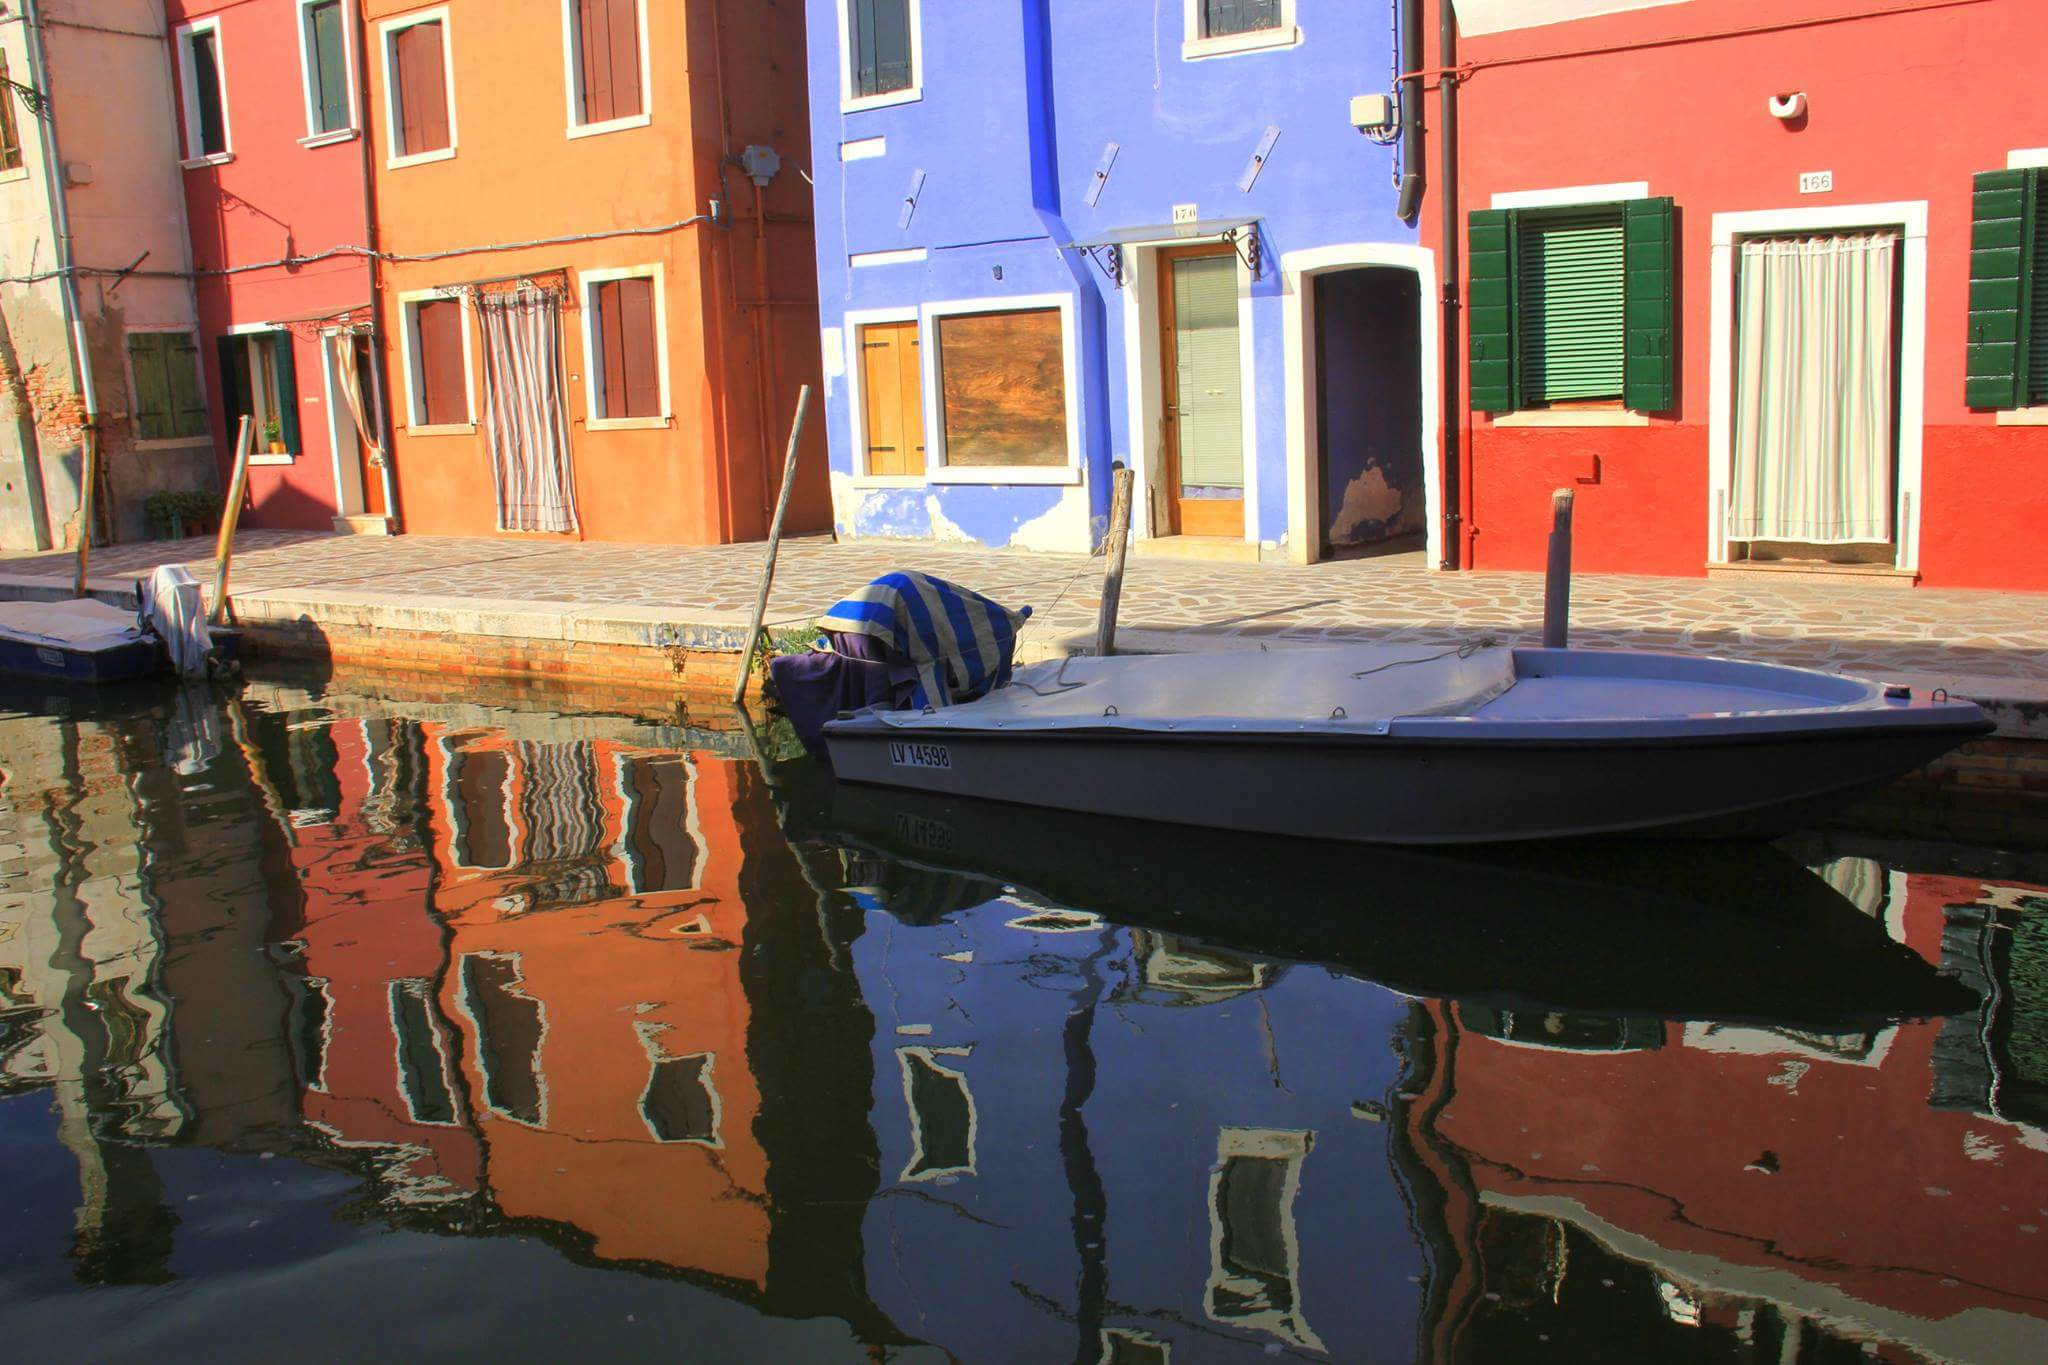 Reflections of houses in Burano island